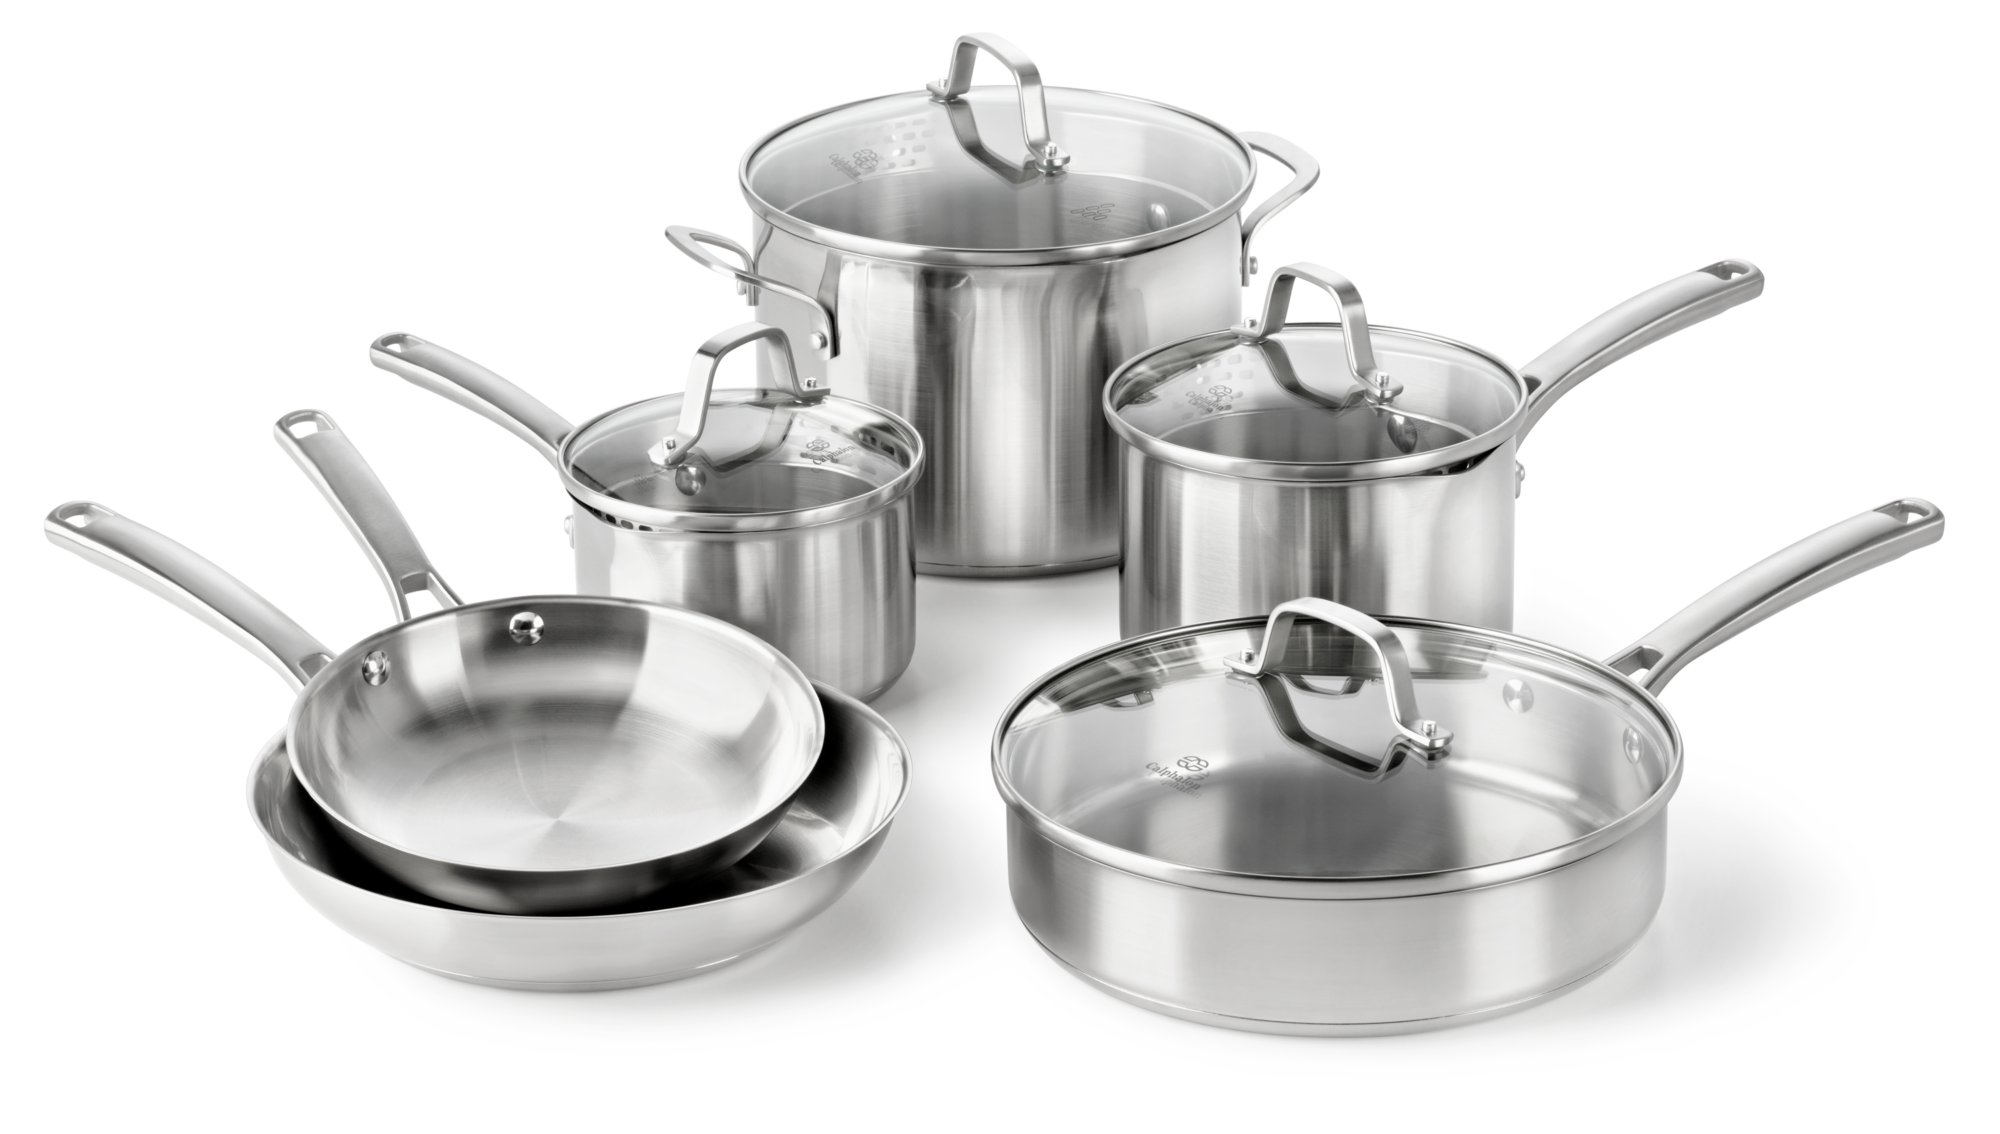 Calphalon Classic Stainless Steel 10-pc. Cookware Set